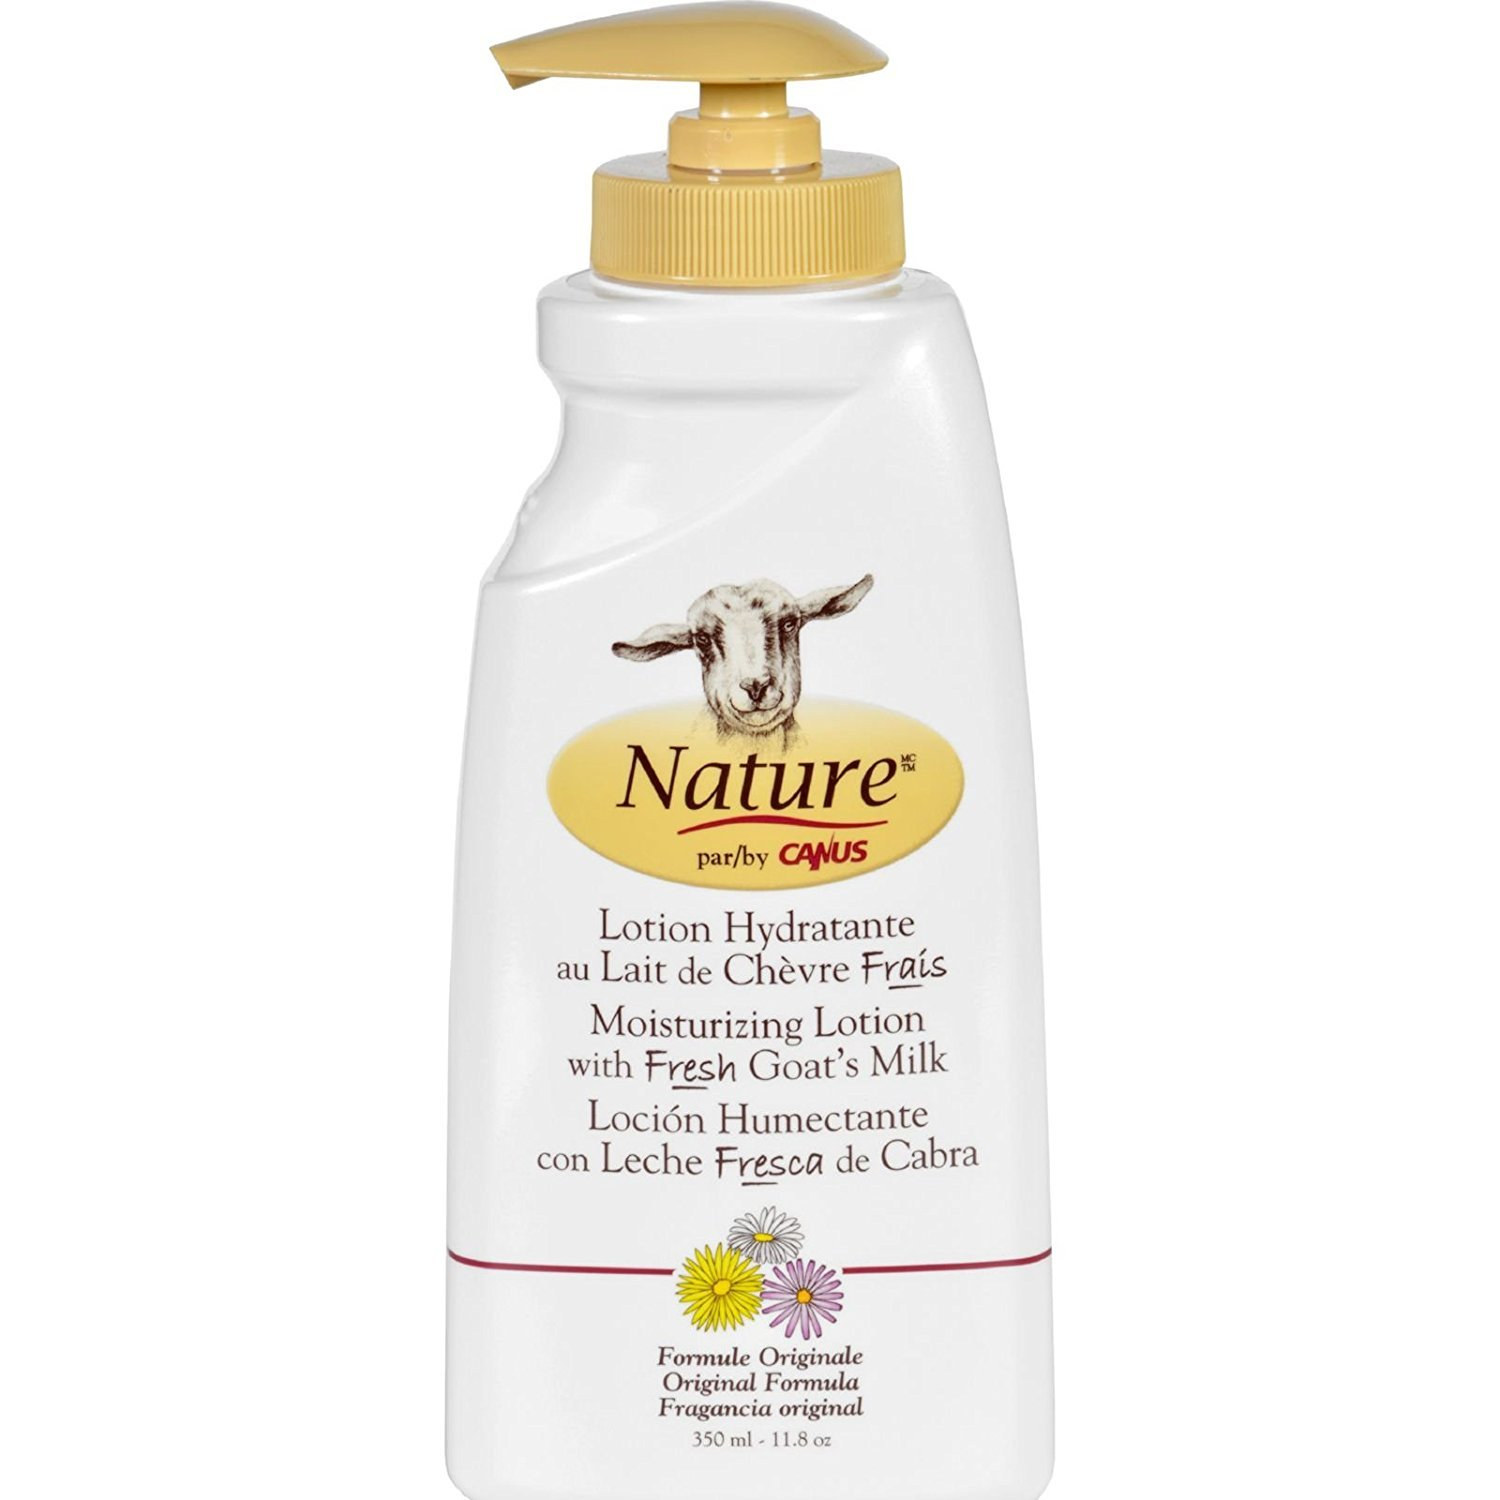 2 Packs of Nature By Canus Lotion - Goats Milk - Nature - Original Formula - 11.8 Oz